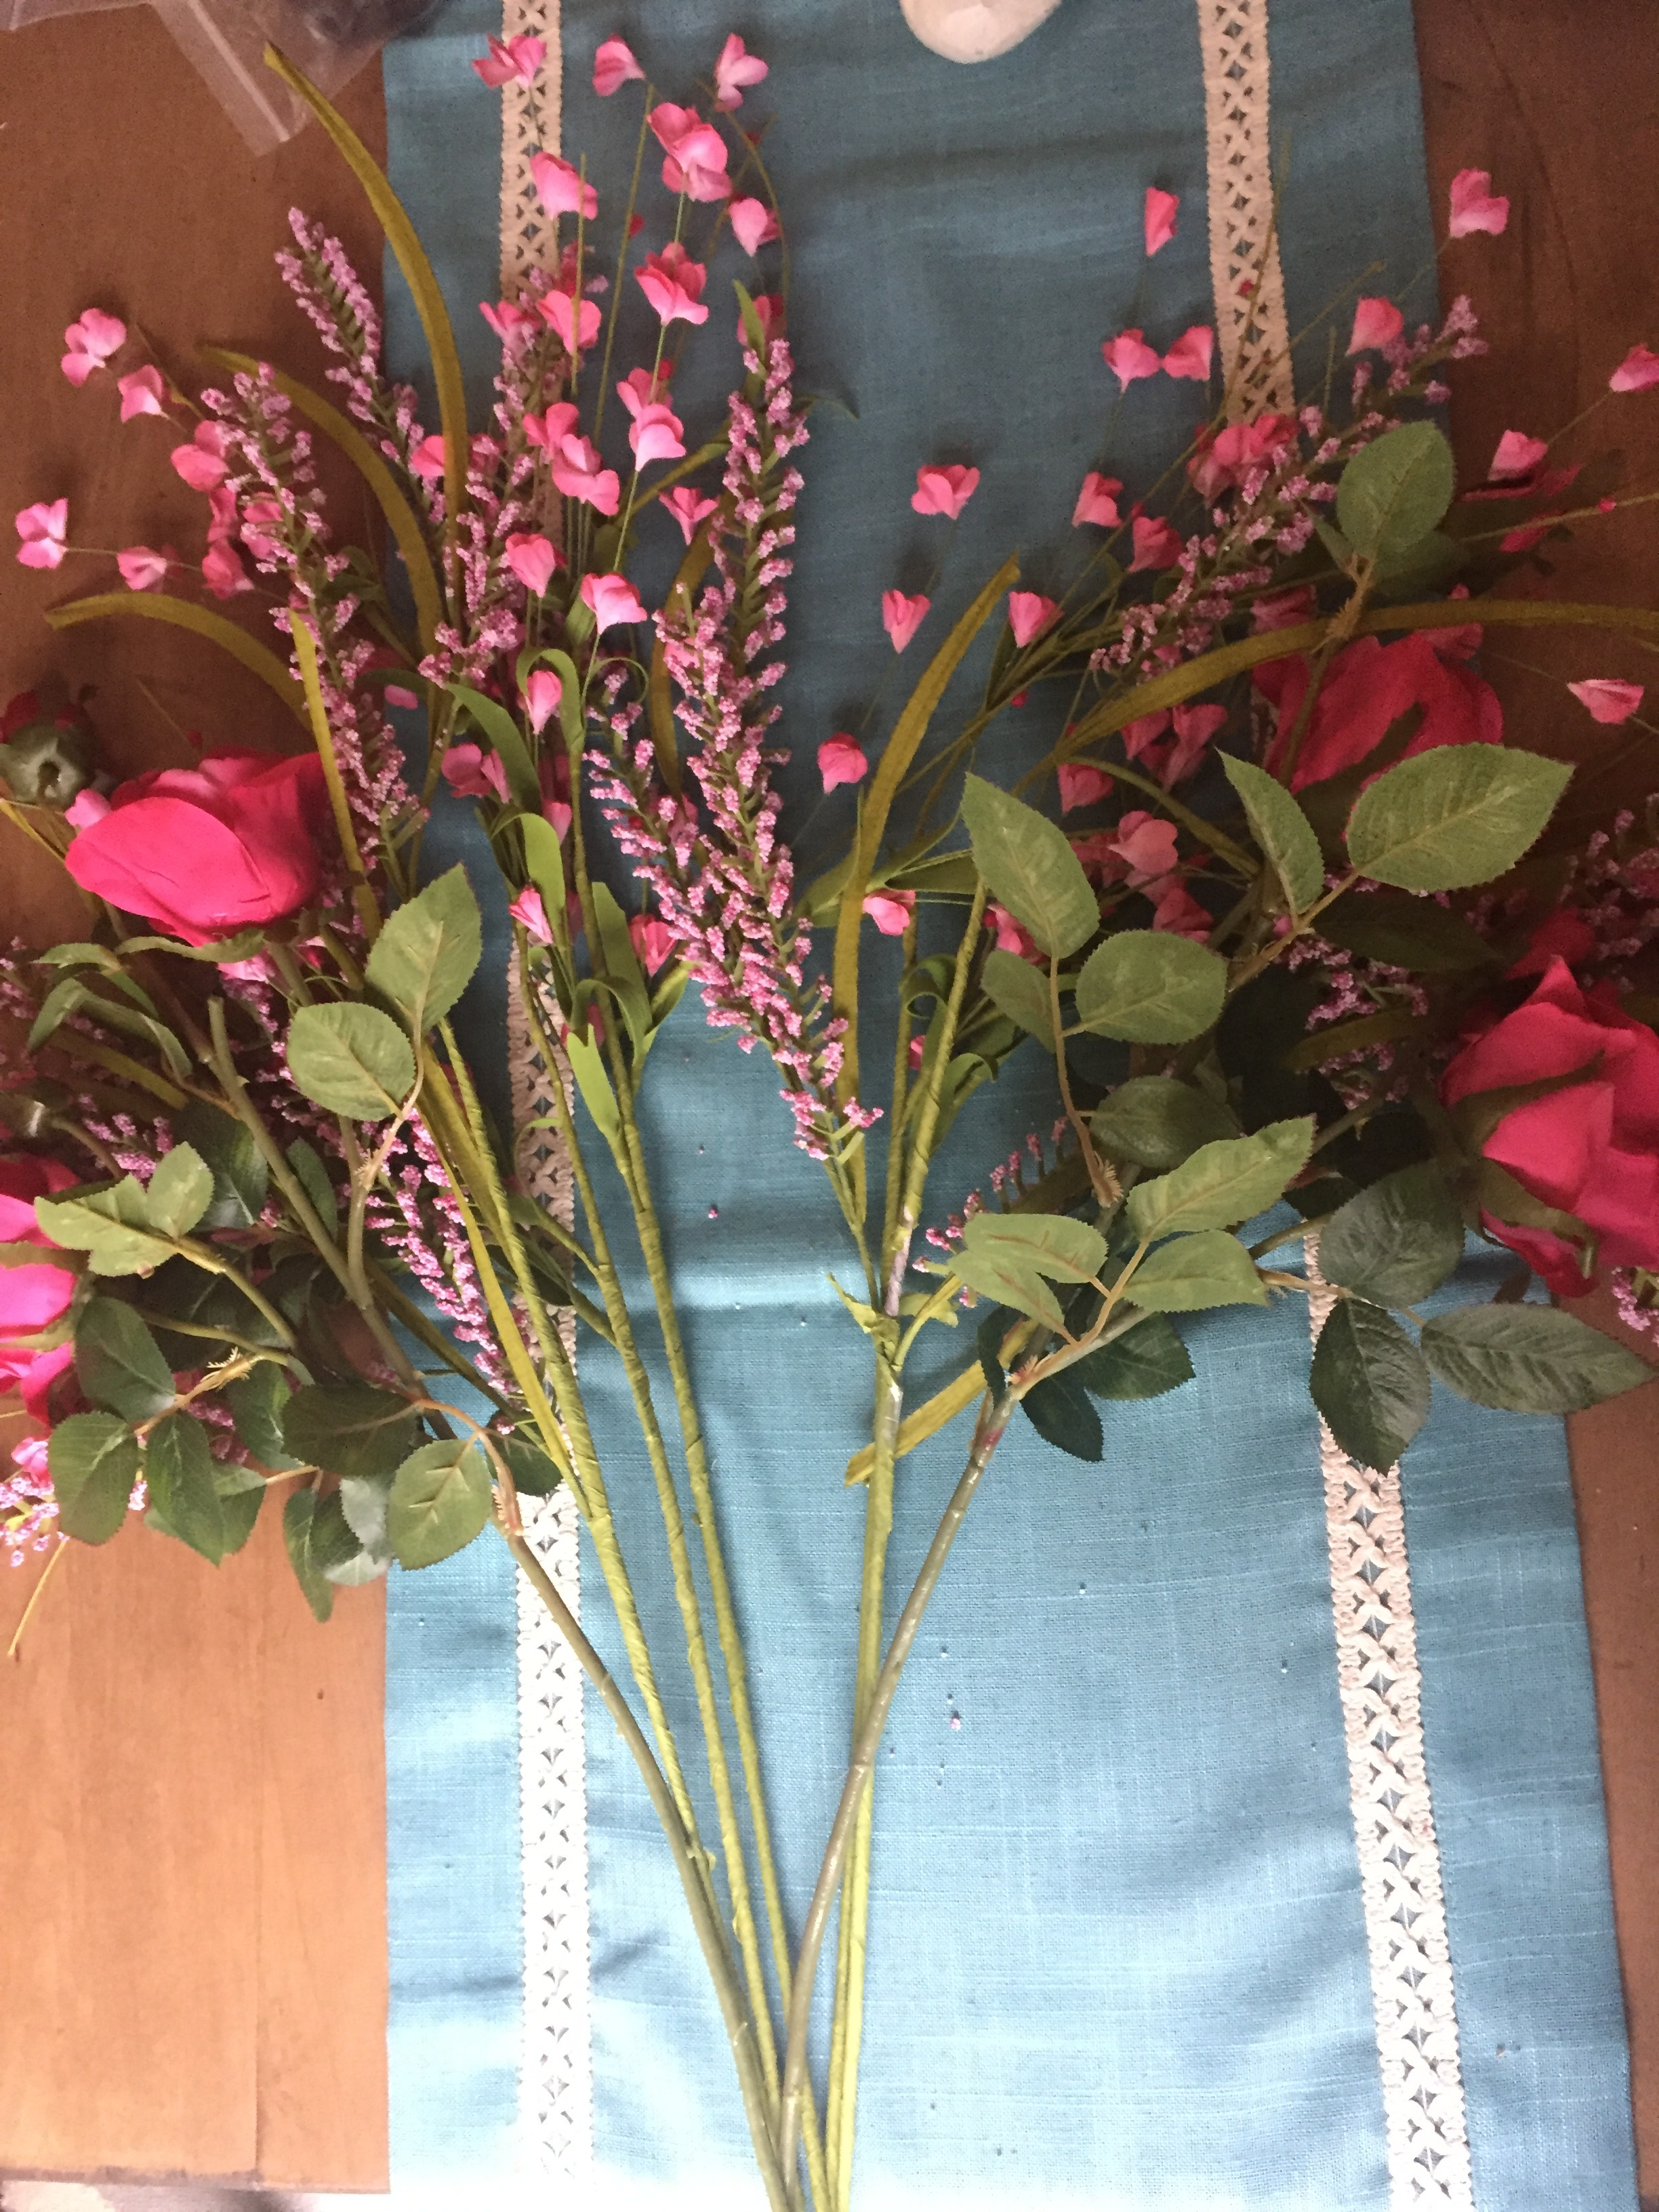 STEP 3: Now lay down the roses on the sides